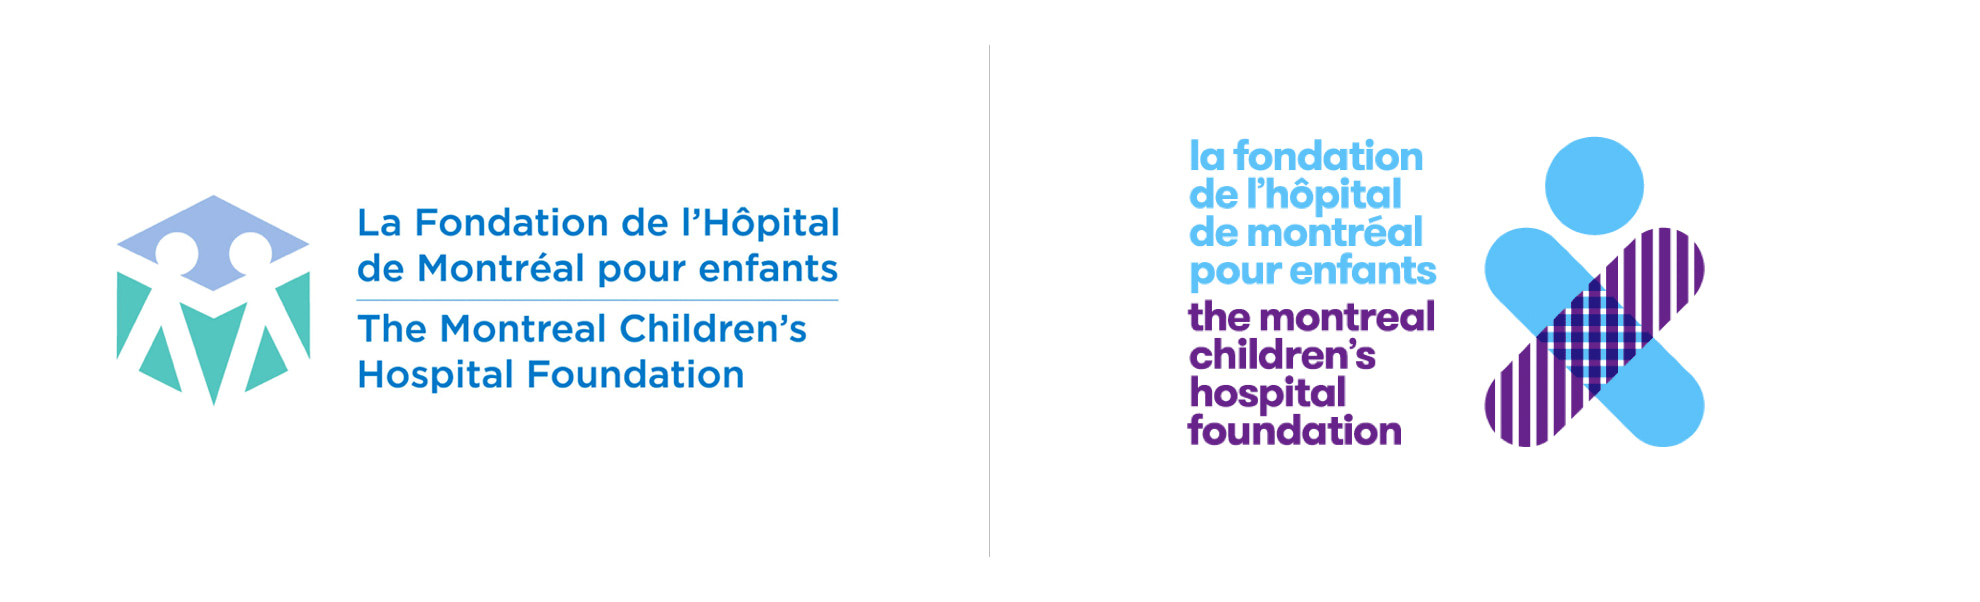 Montreal Children's Hospital Foundation nowe logo